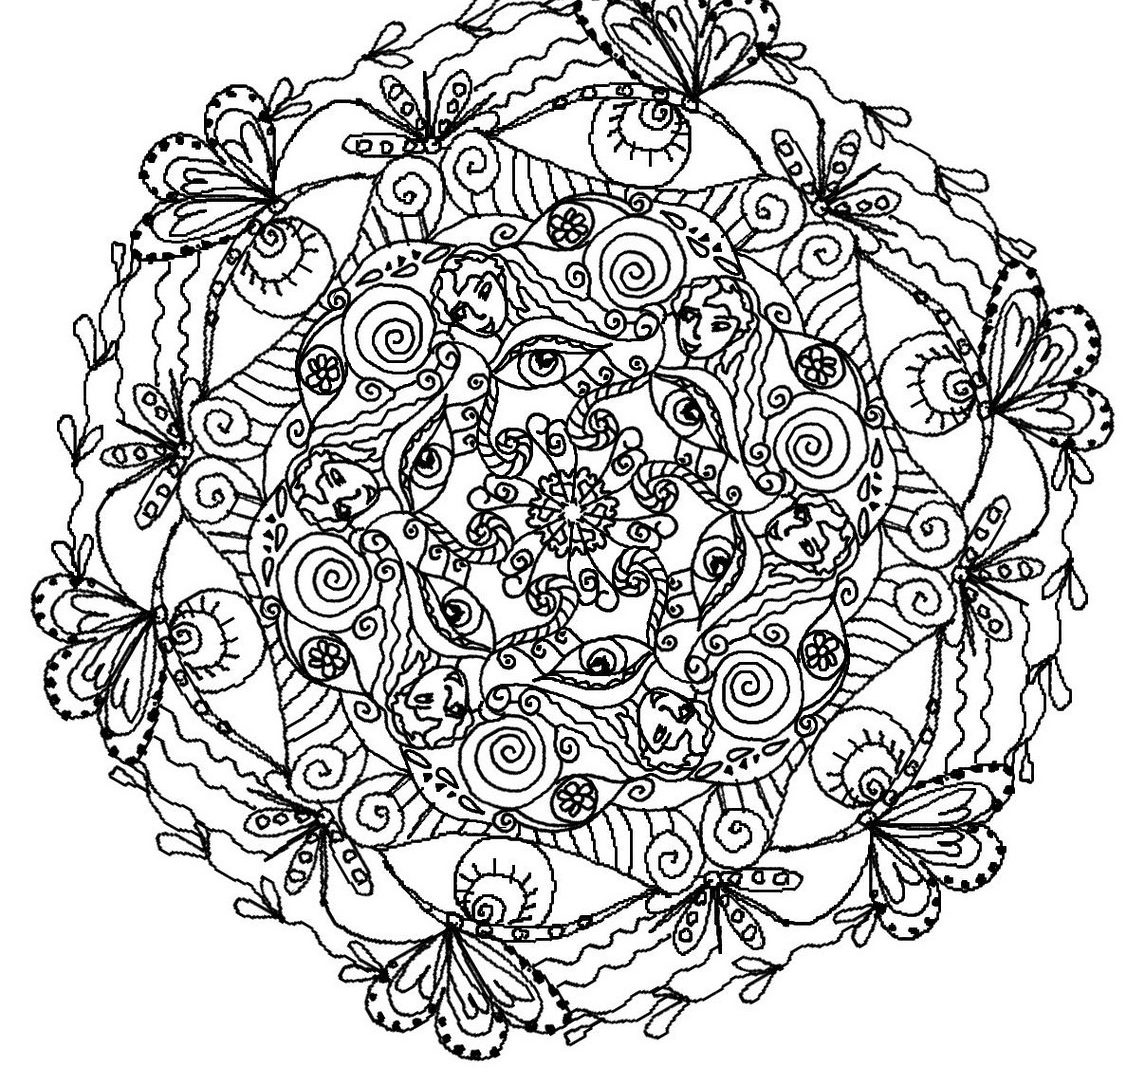 1145x1080 Fancy Printable Mandala Coloring Pages For Adults Artistic Page